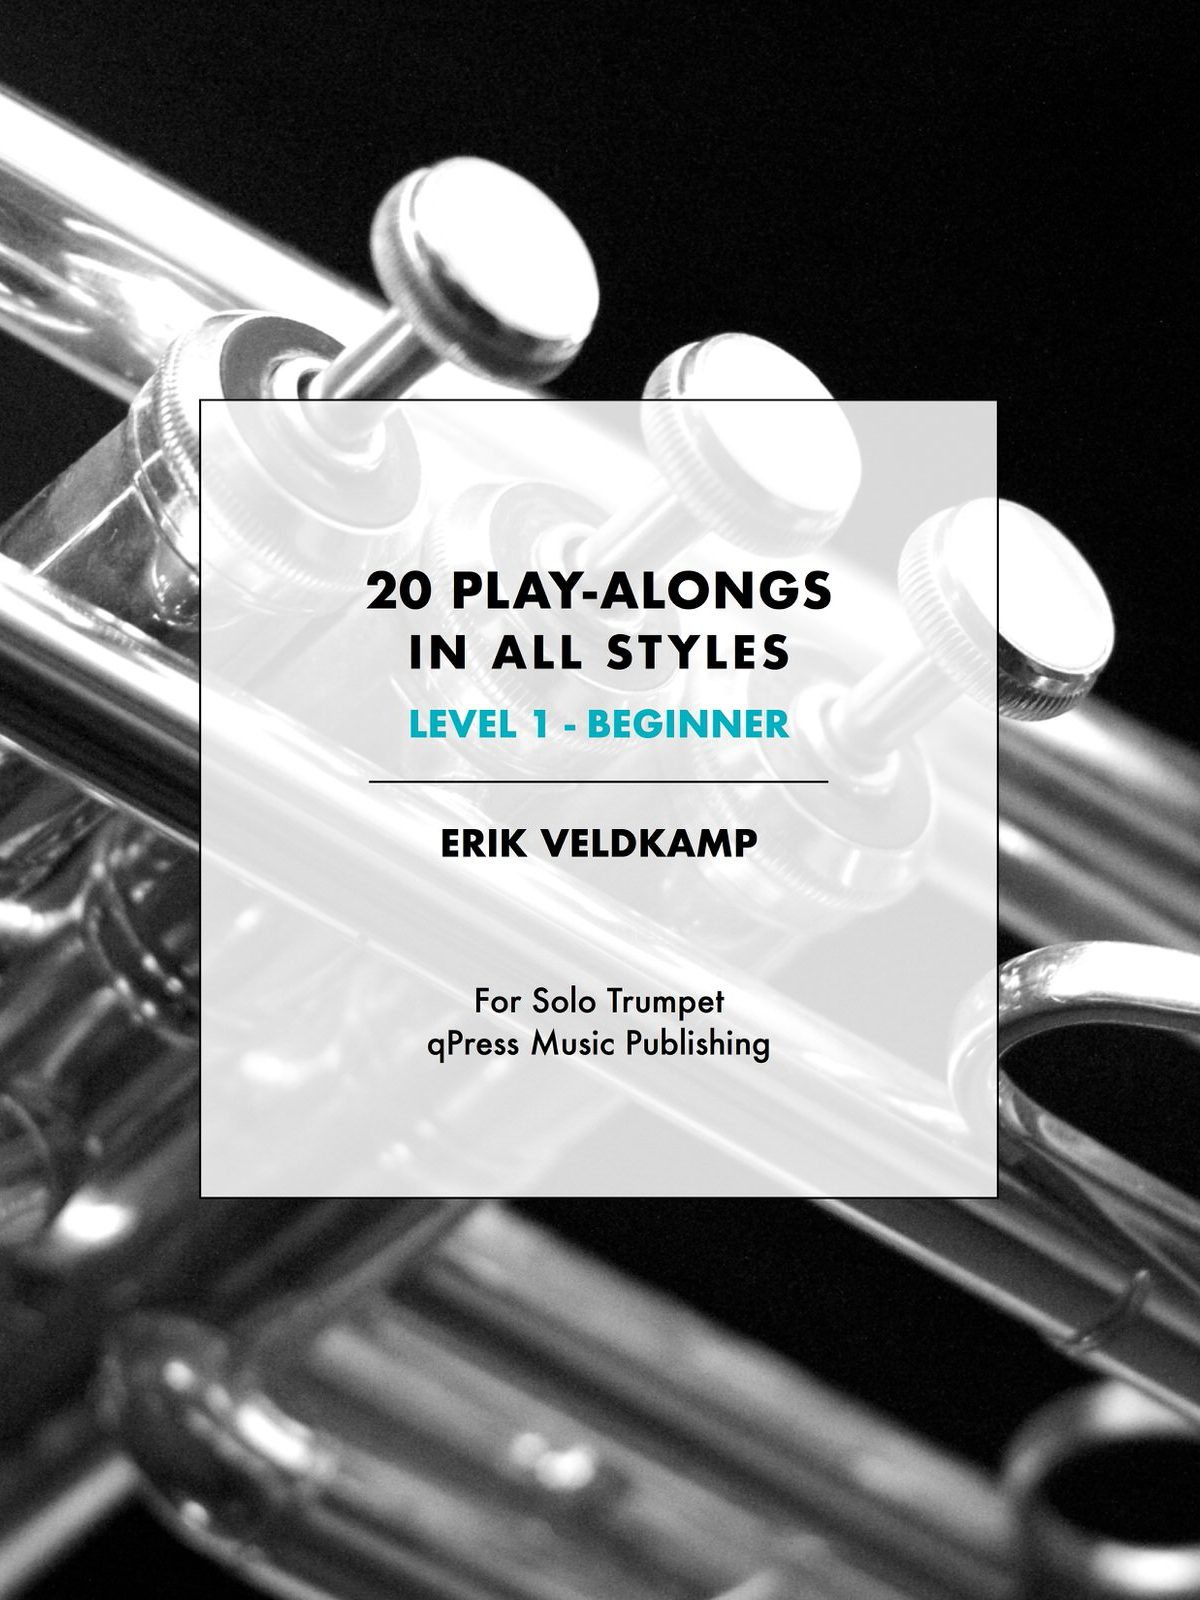 20 Play-Alongs in All Styles Level 1 (Beginner)-p01